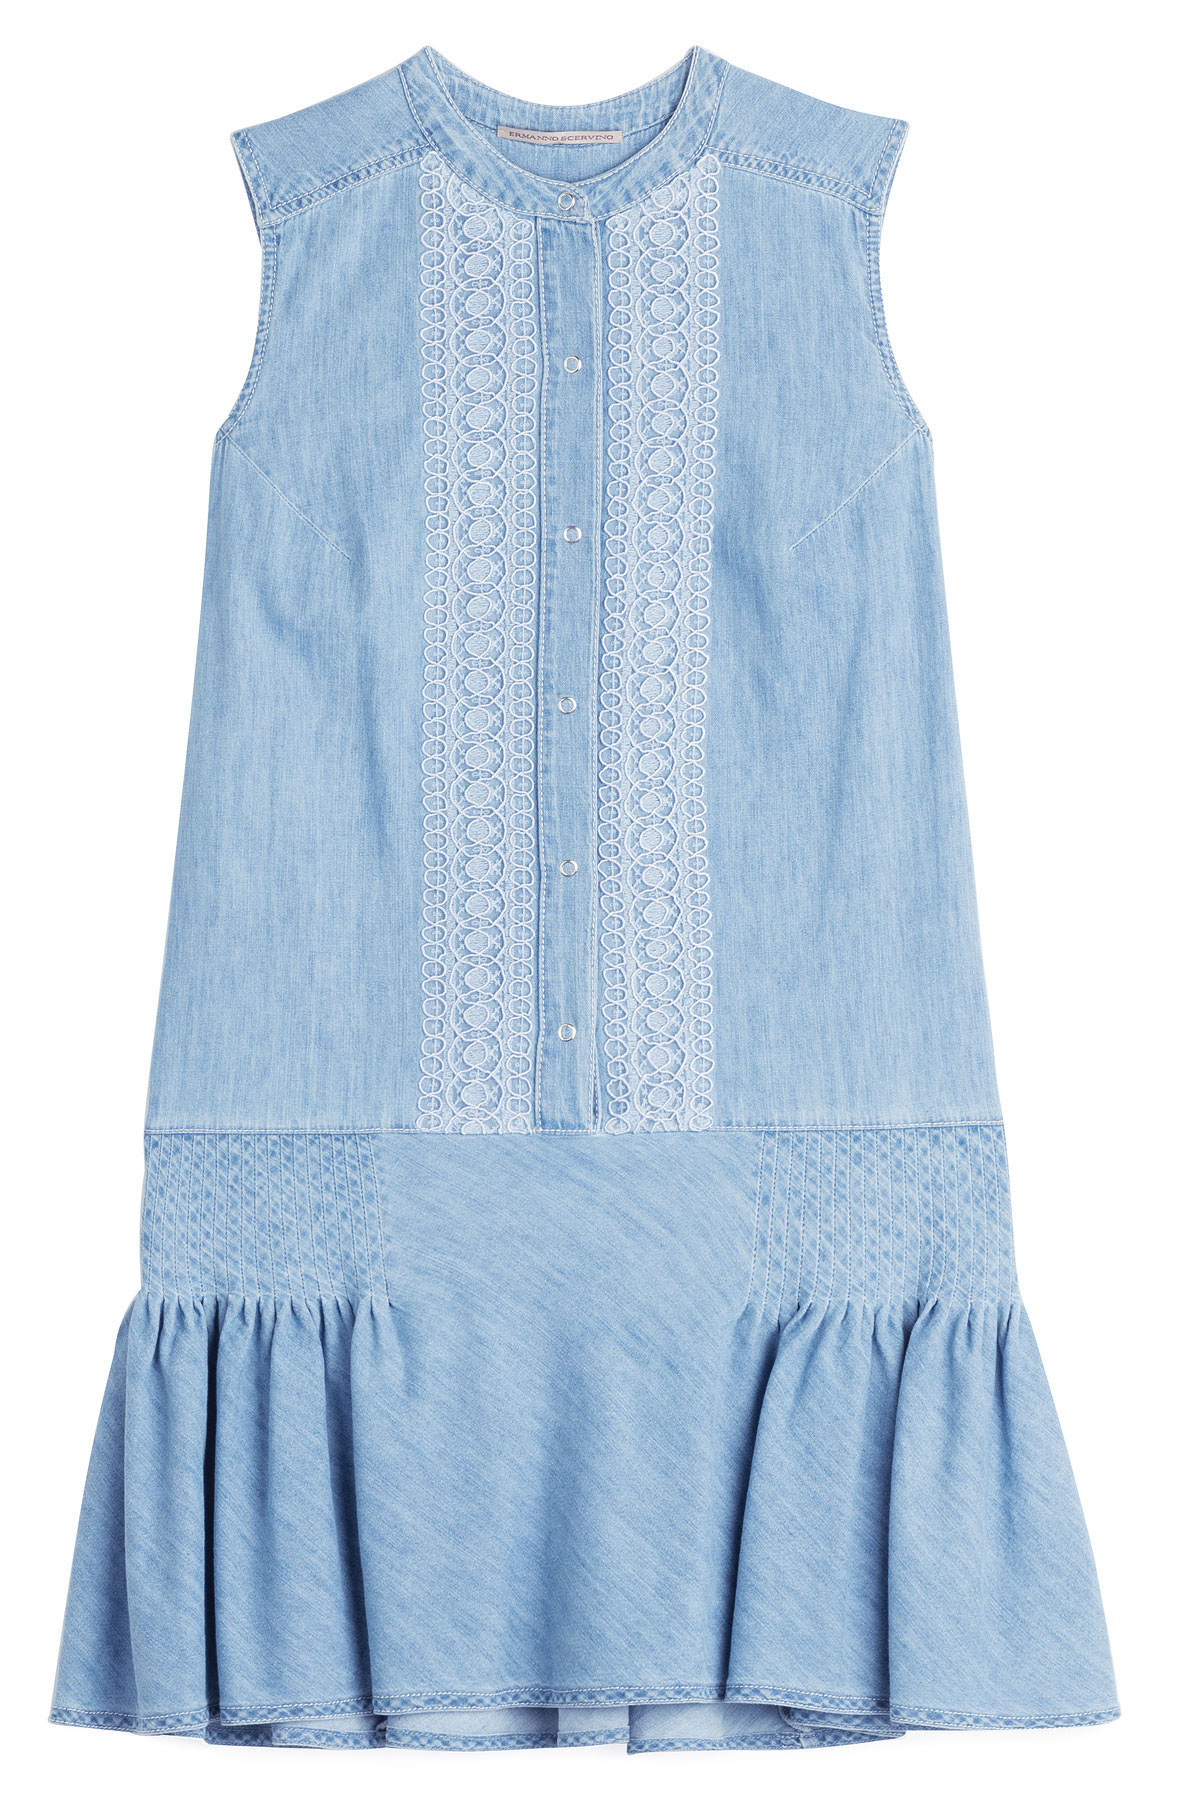 Lyst ermanno scervino embroidered denim dress in blue